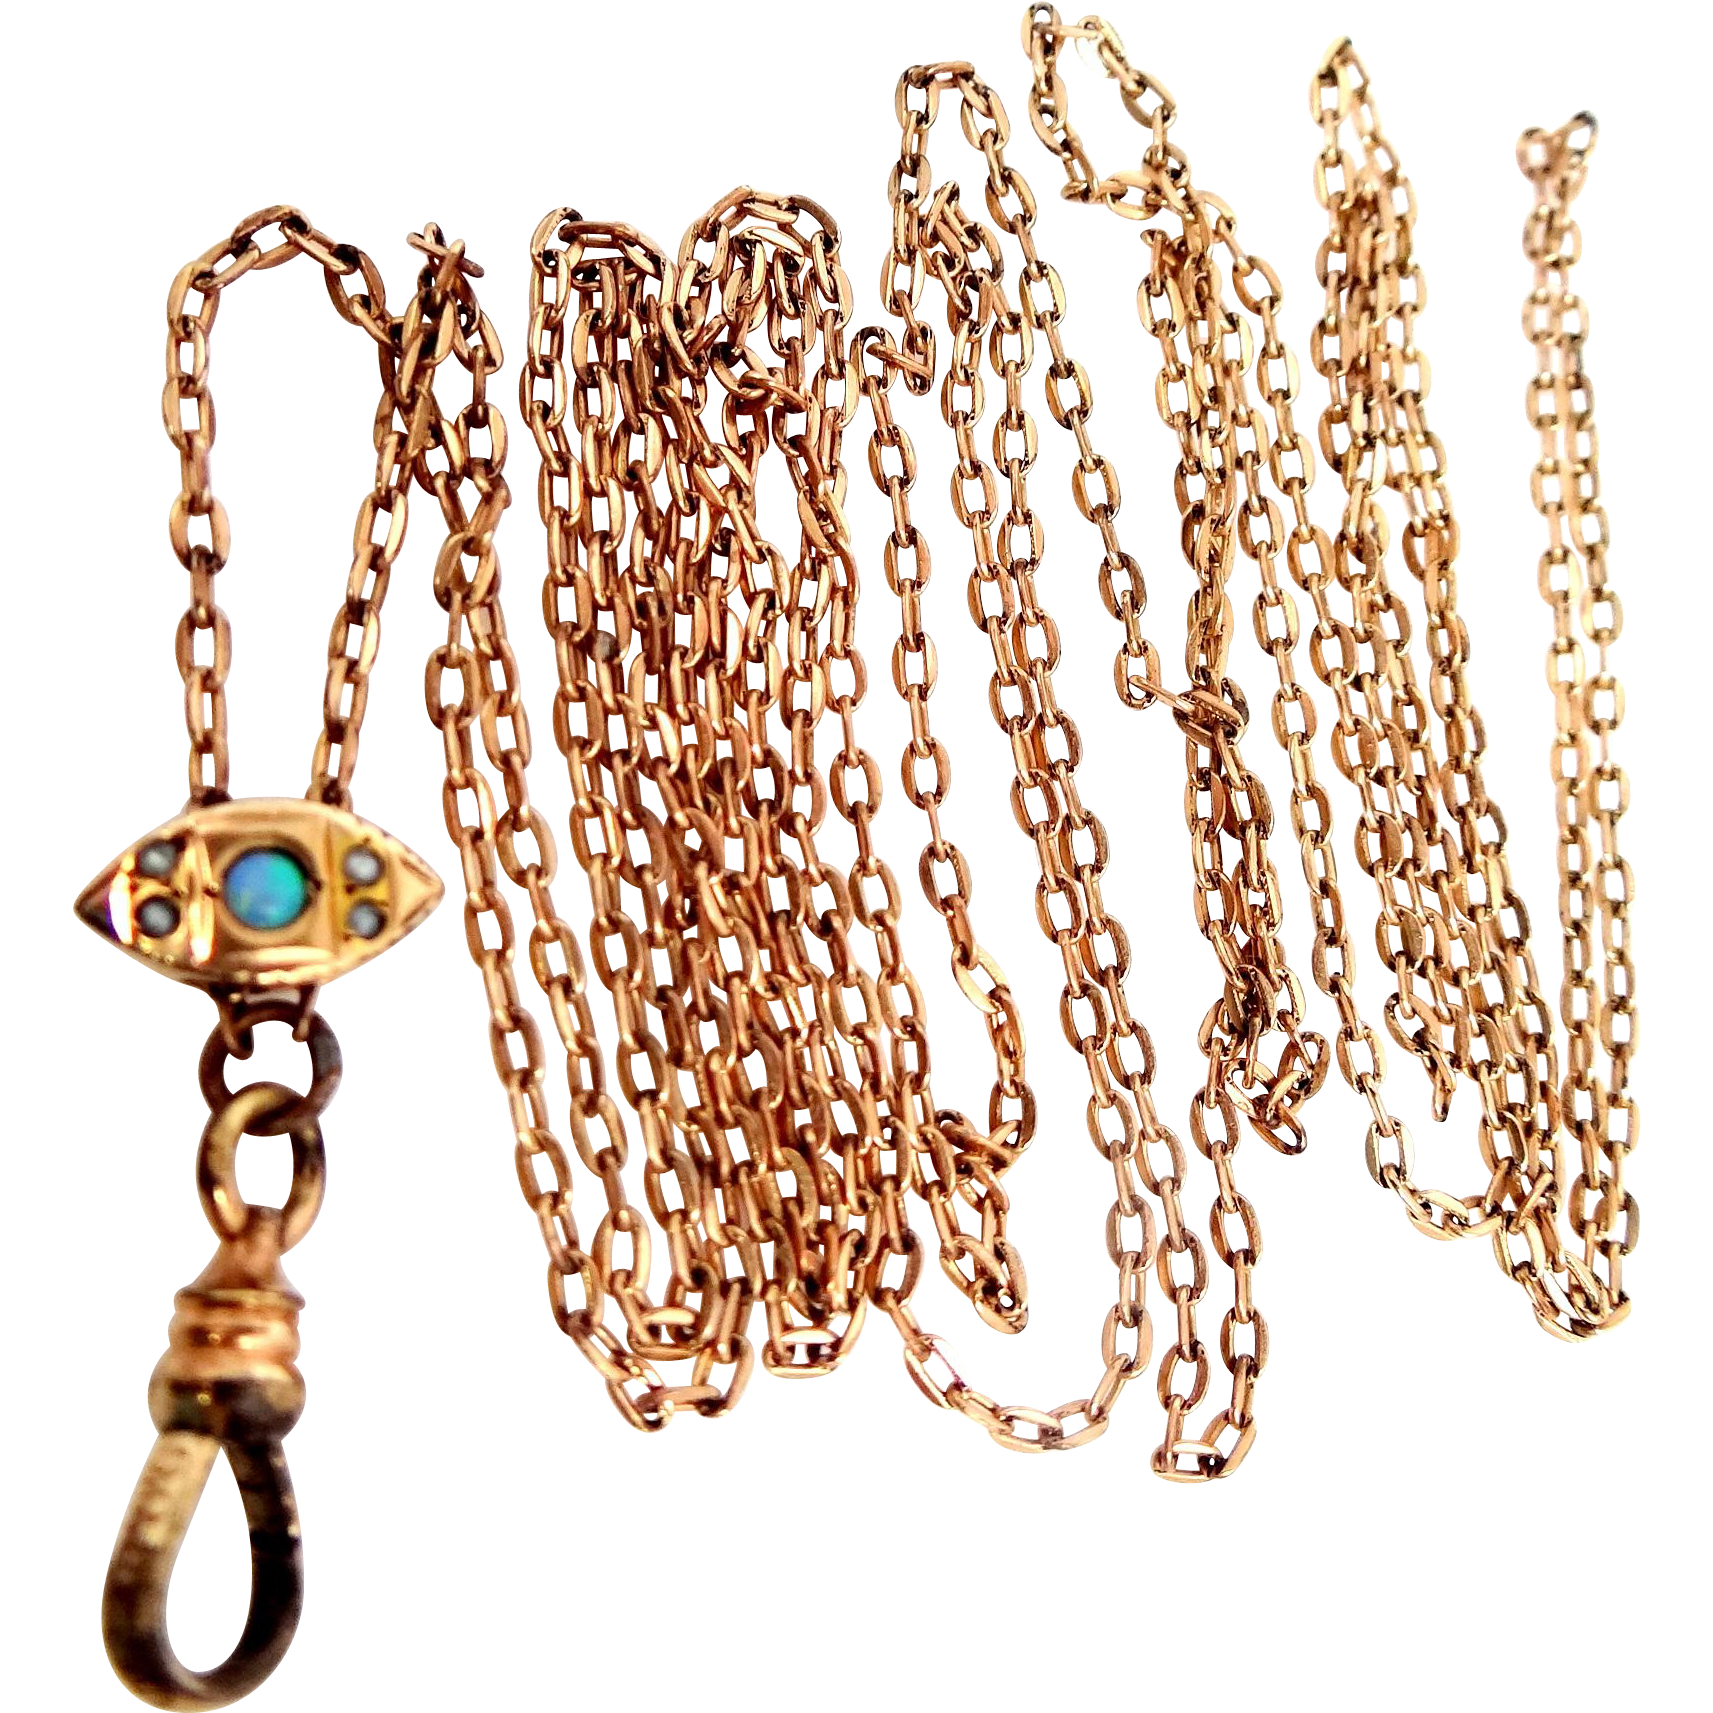 10k Gold Opal and Seed Pearls Slide on S.O. Bigney Gold Filled Chain